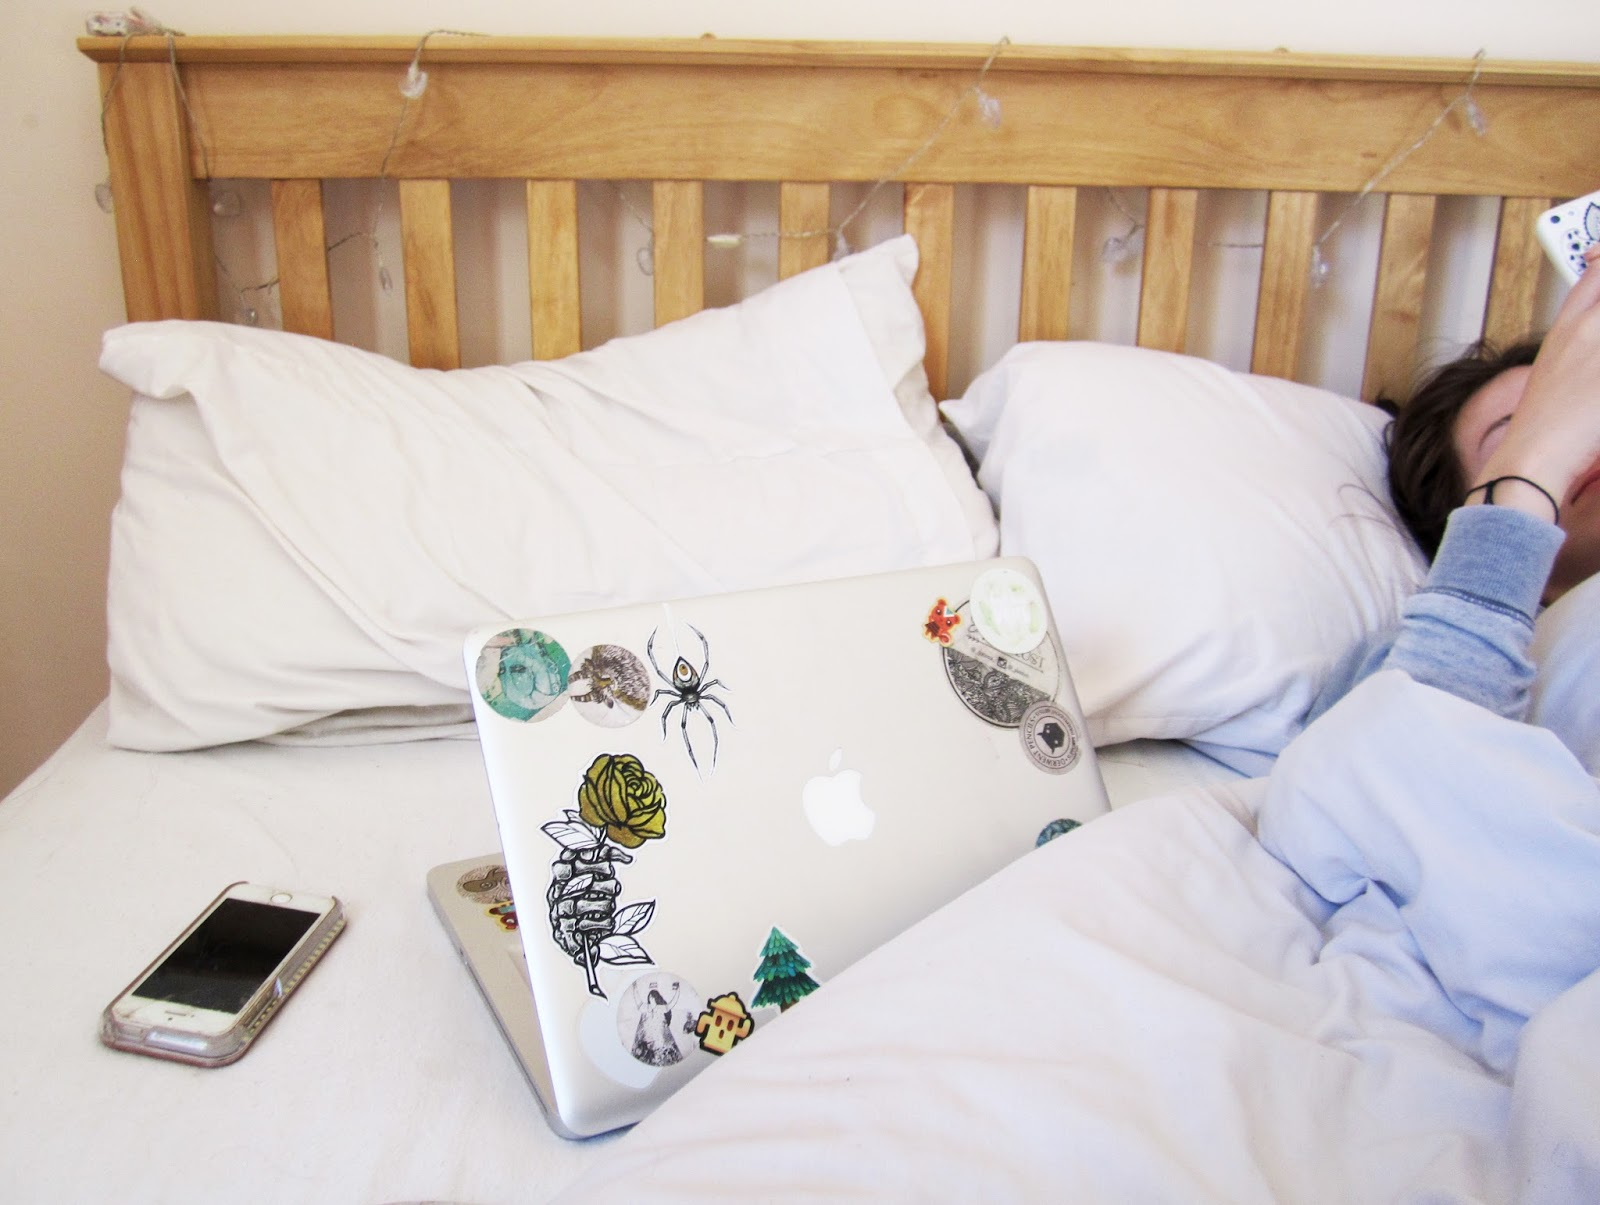 macbook on a bed